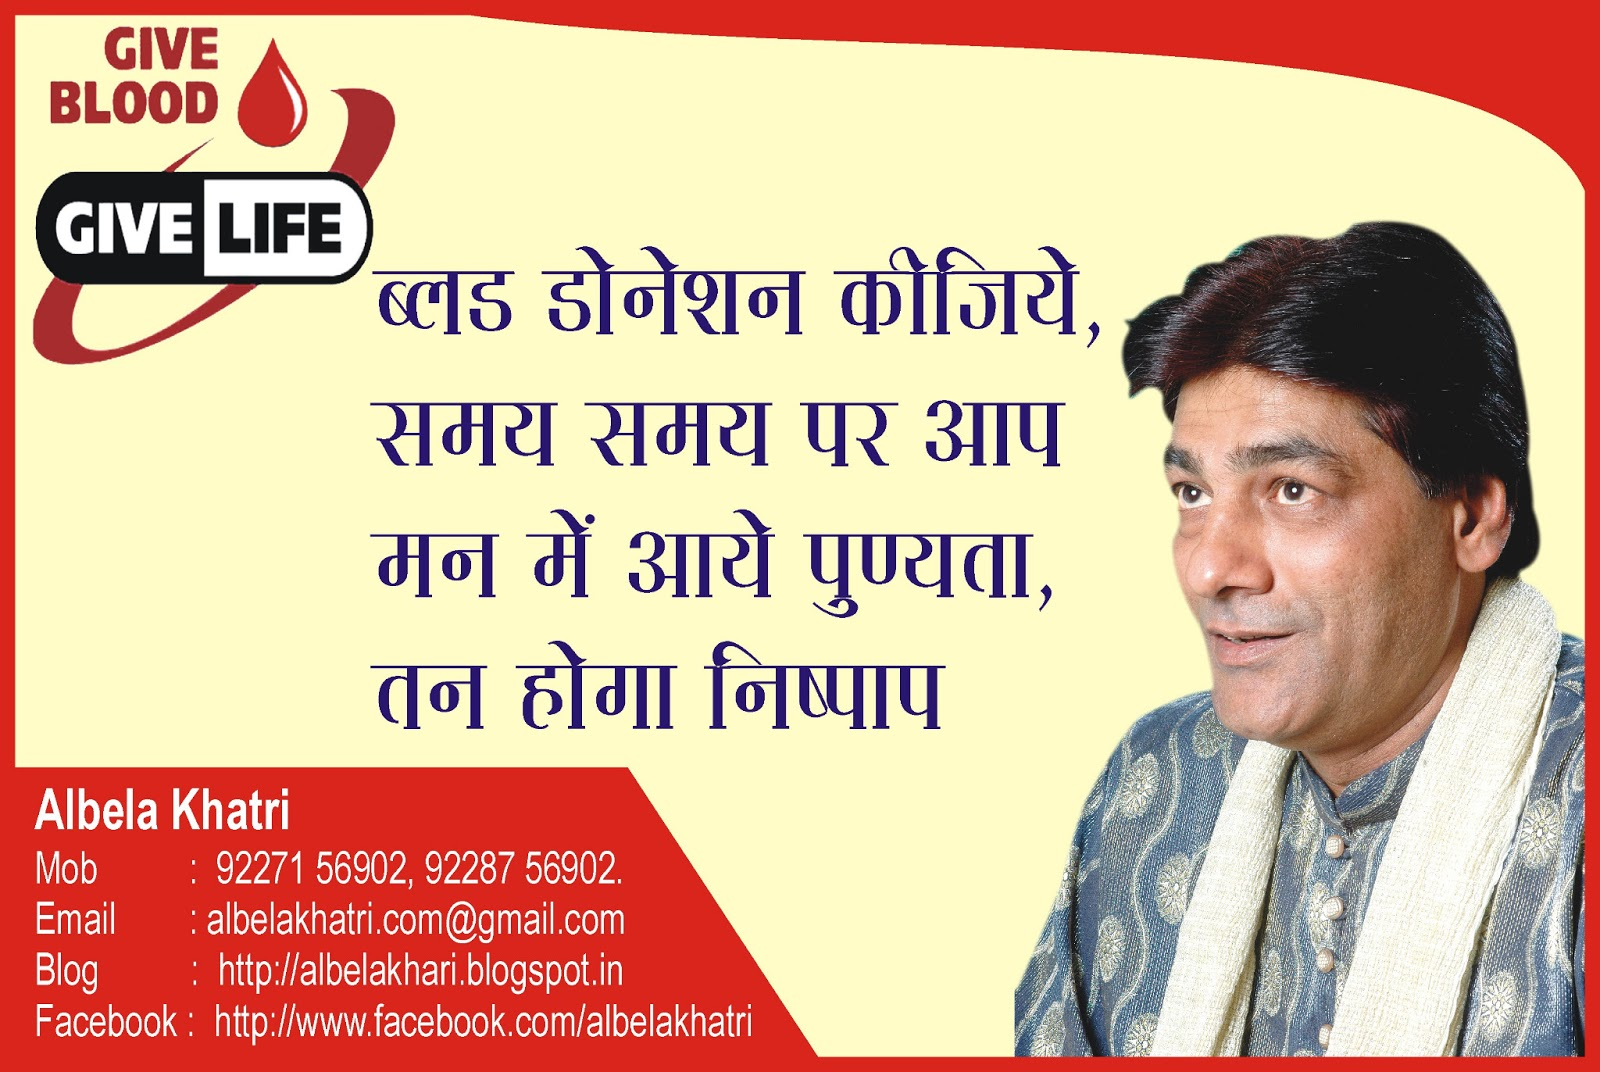 blood donation day essay in hindi